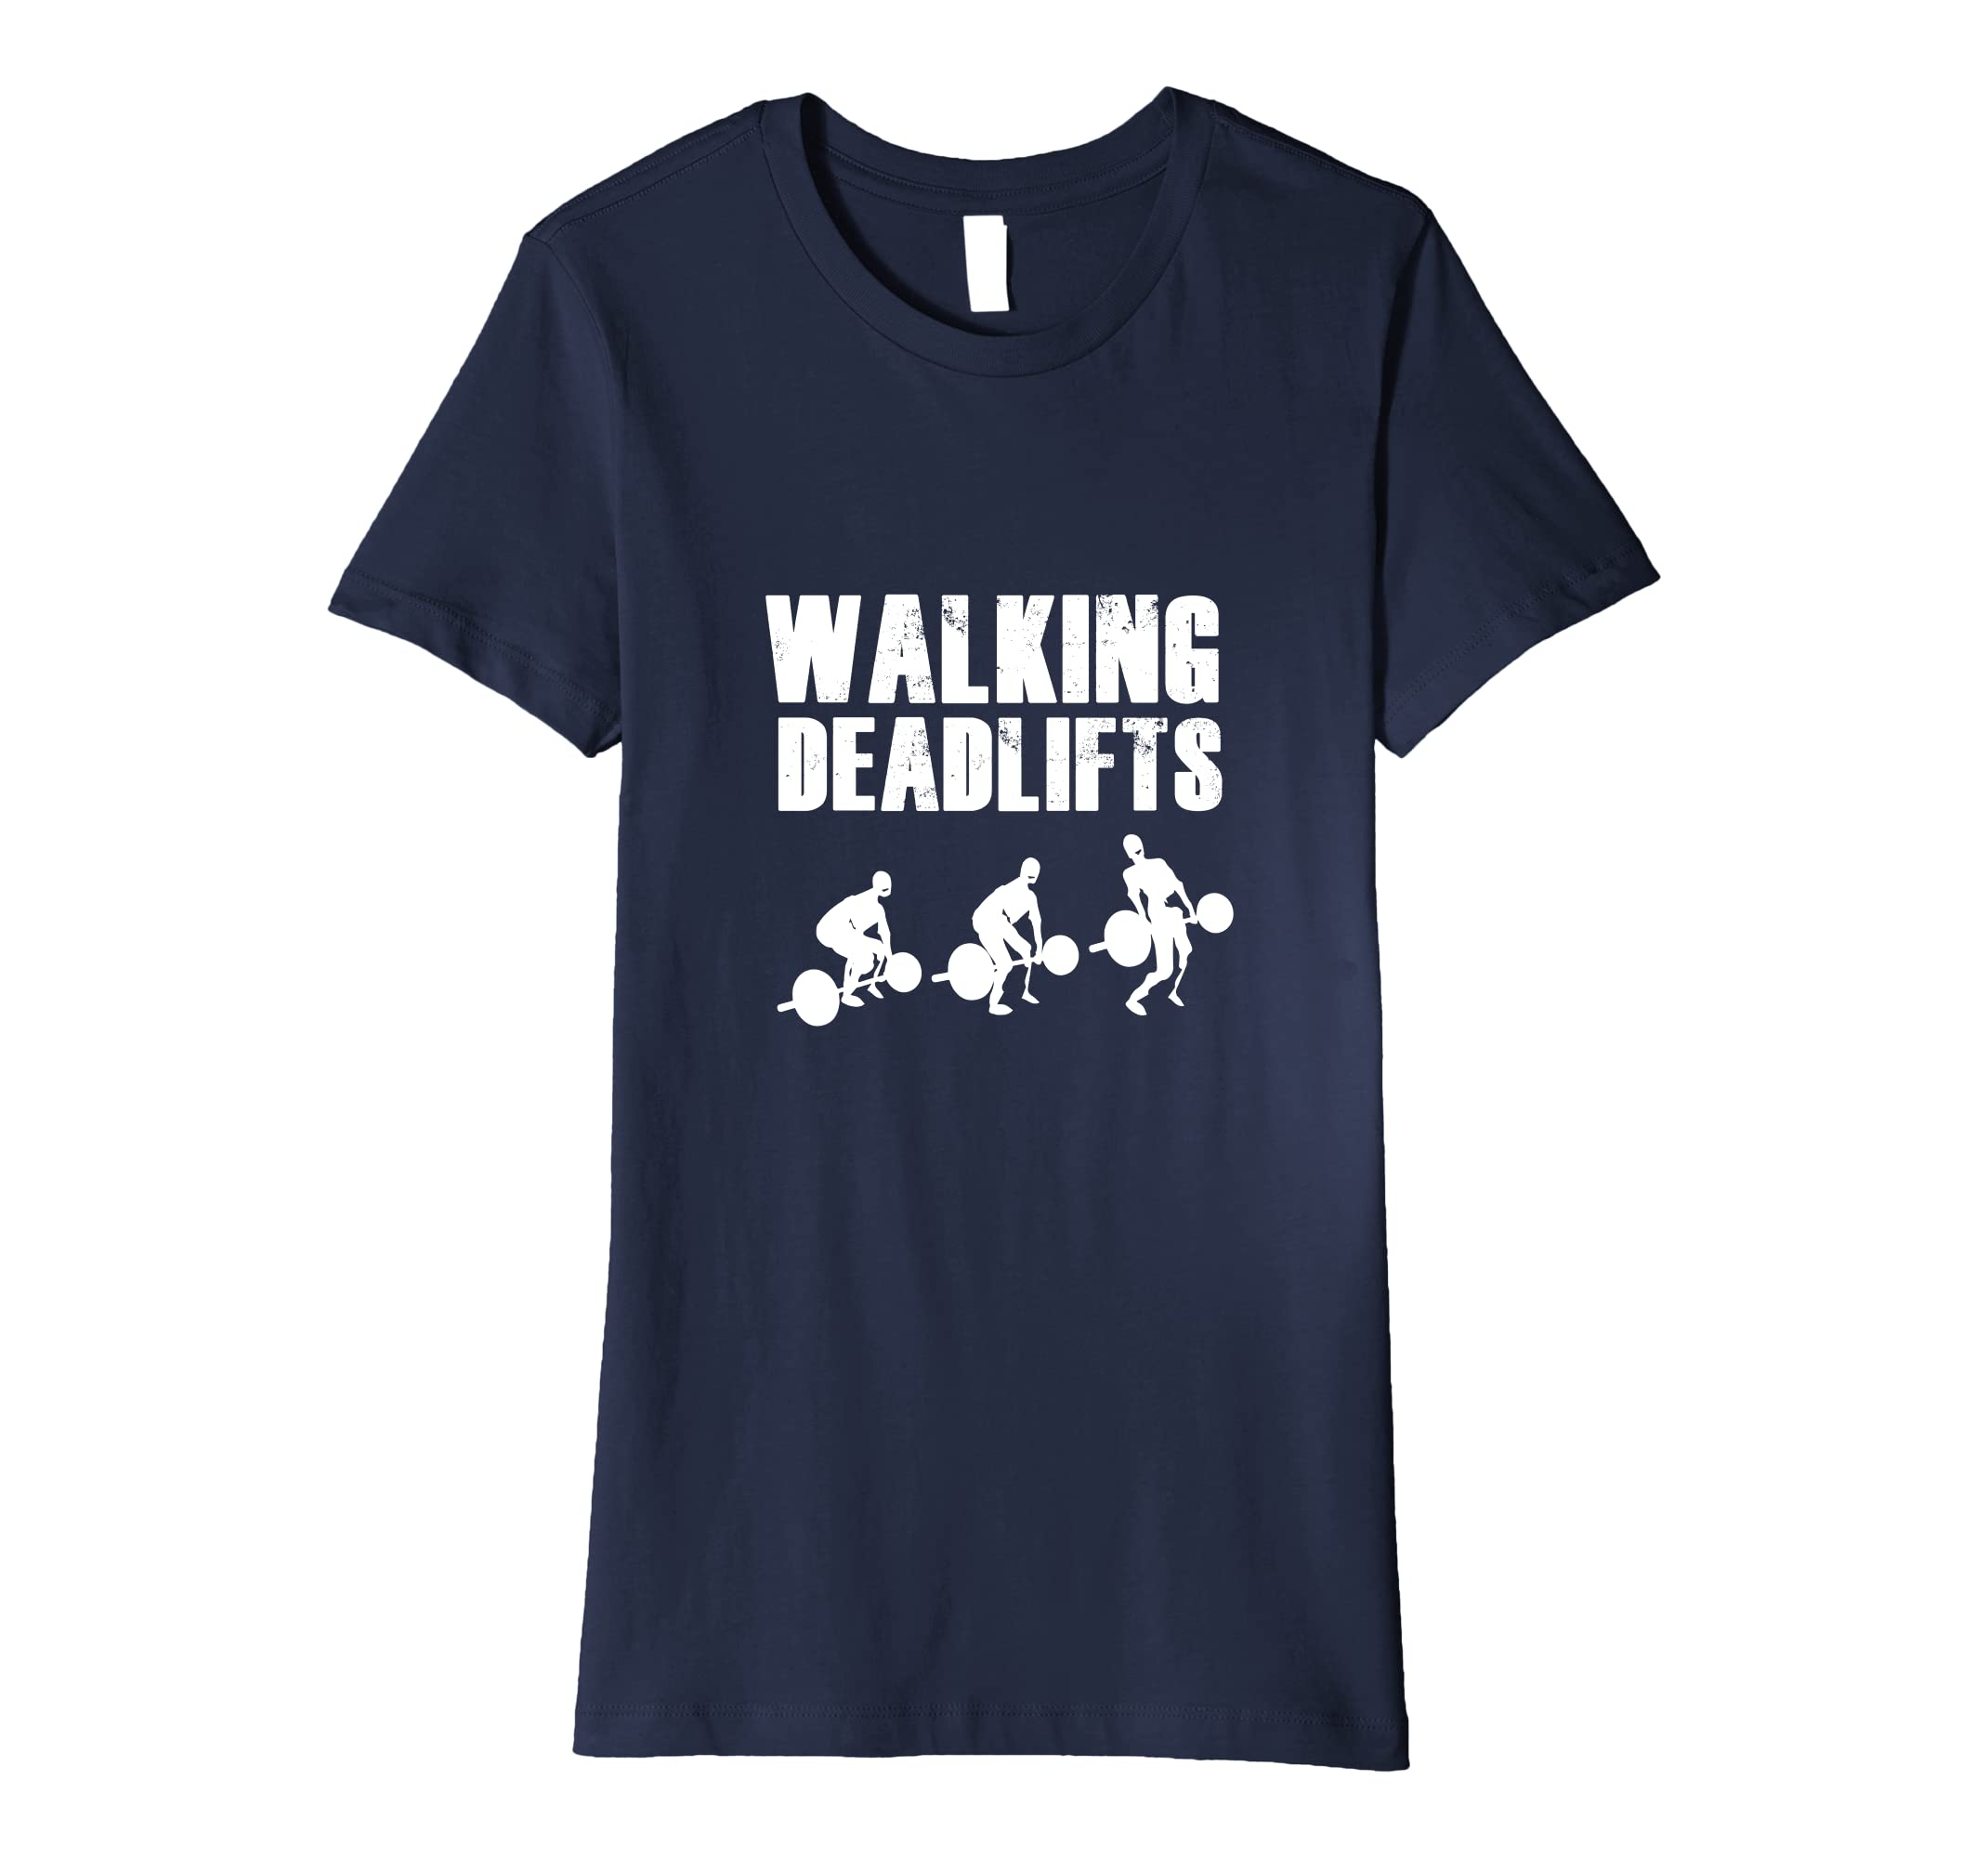 e926d671 Amazon.com: Walking Deadlifts Walkers Funny T-Shirt For Weightlifting:  Clothing